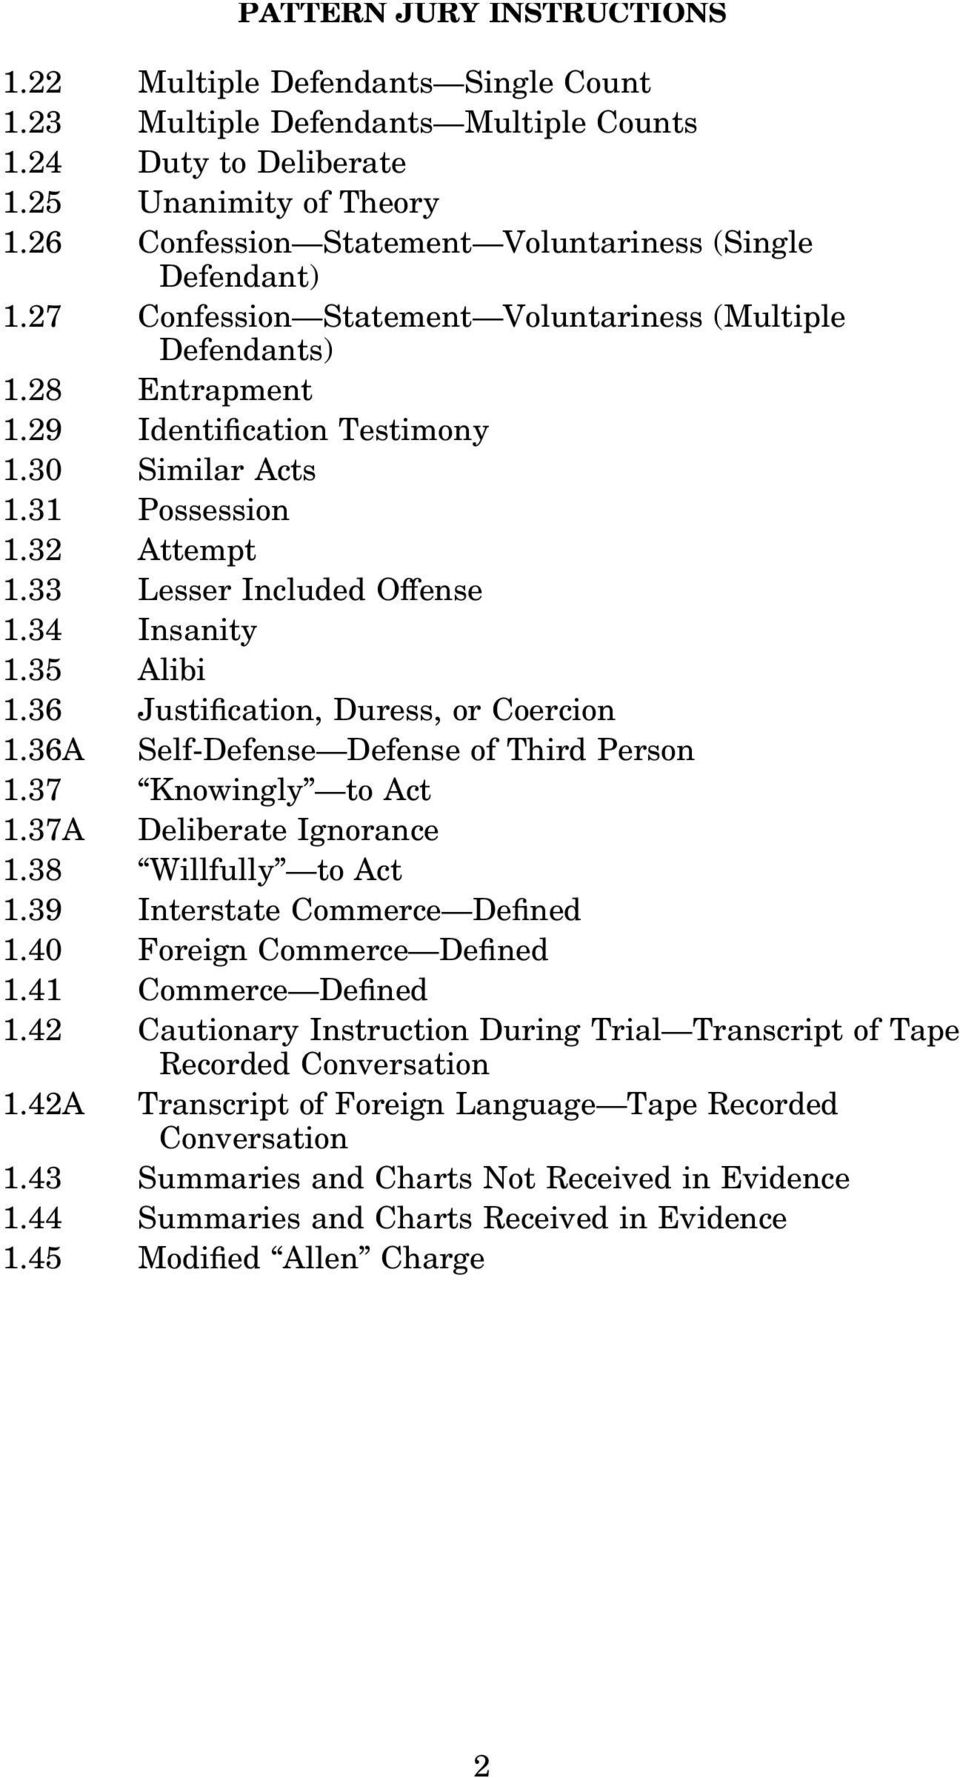 32 Attempt 1.33 Lesser Included O ense 1.34 Insanity 1.35 Alibi 1.36 Justi cation, Duress, or Coercion 1.36A Self-Defense Defense of Third Person 1.37 Knowingly to Act 1.37A Deliberate Ignorance 1.